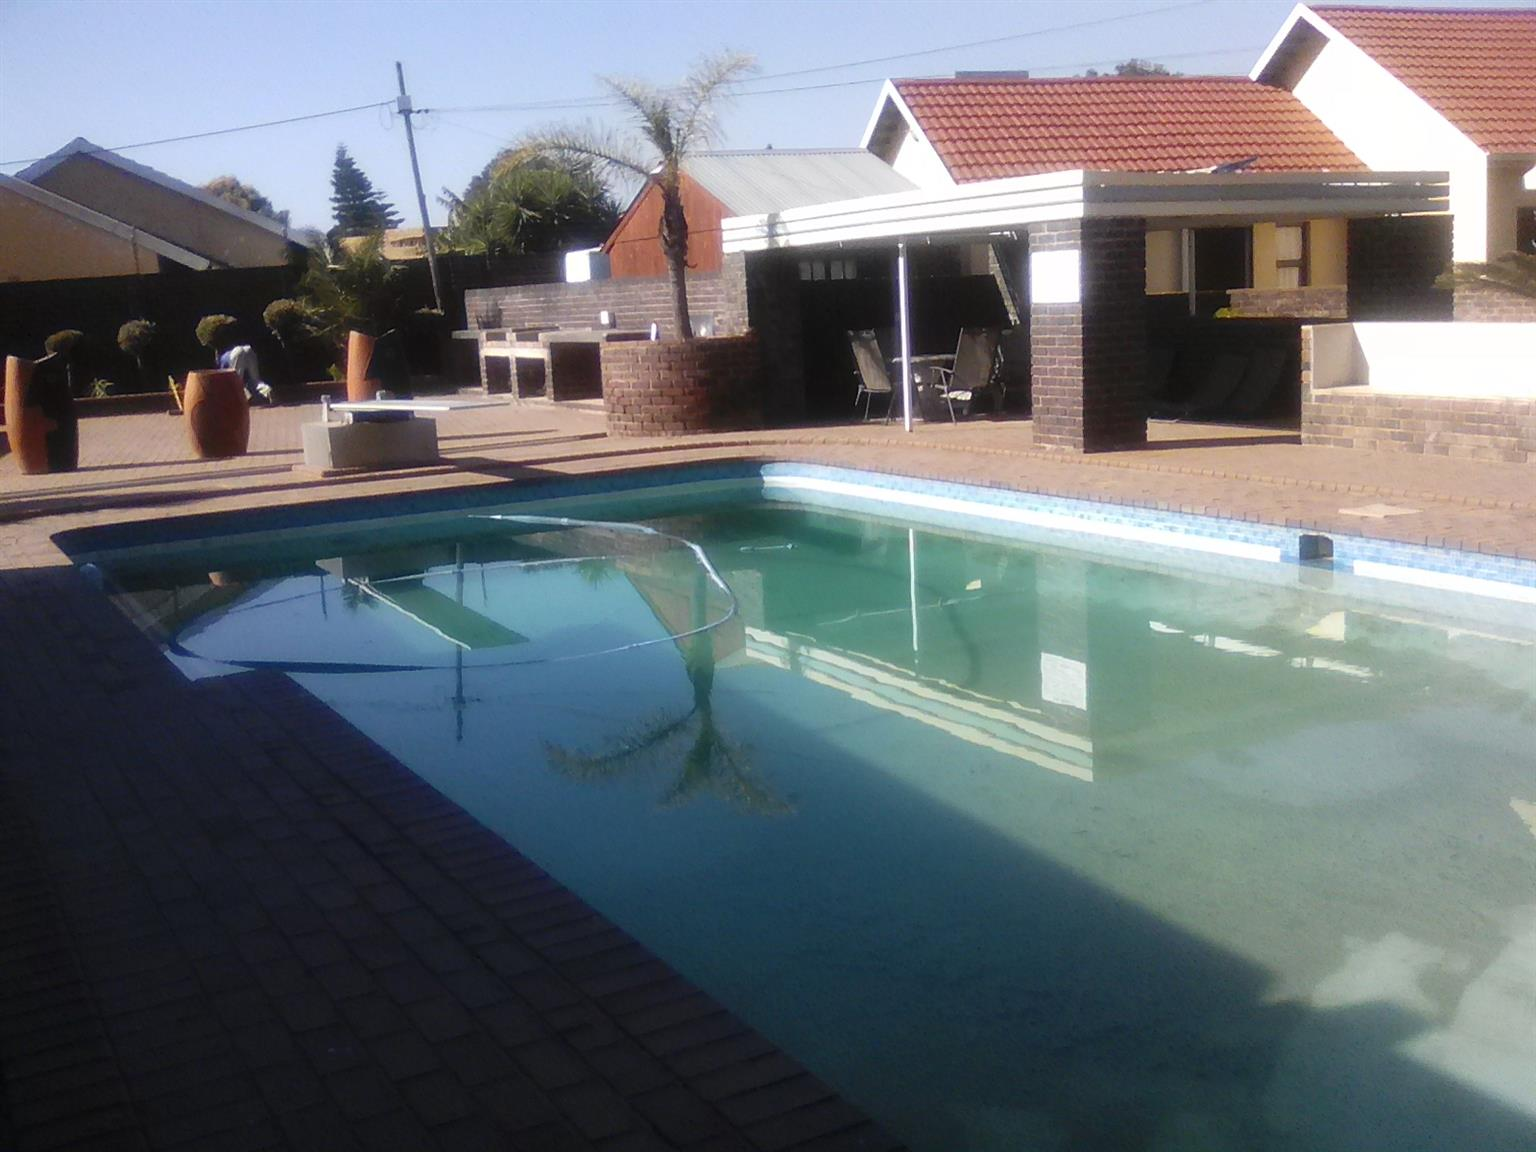 Prime Investment Property in Kempton Park